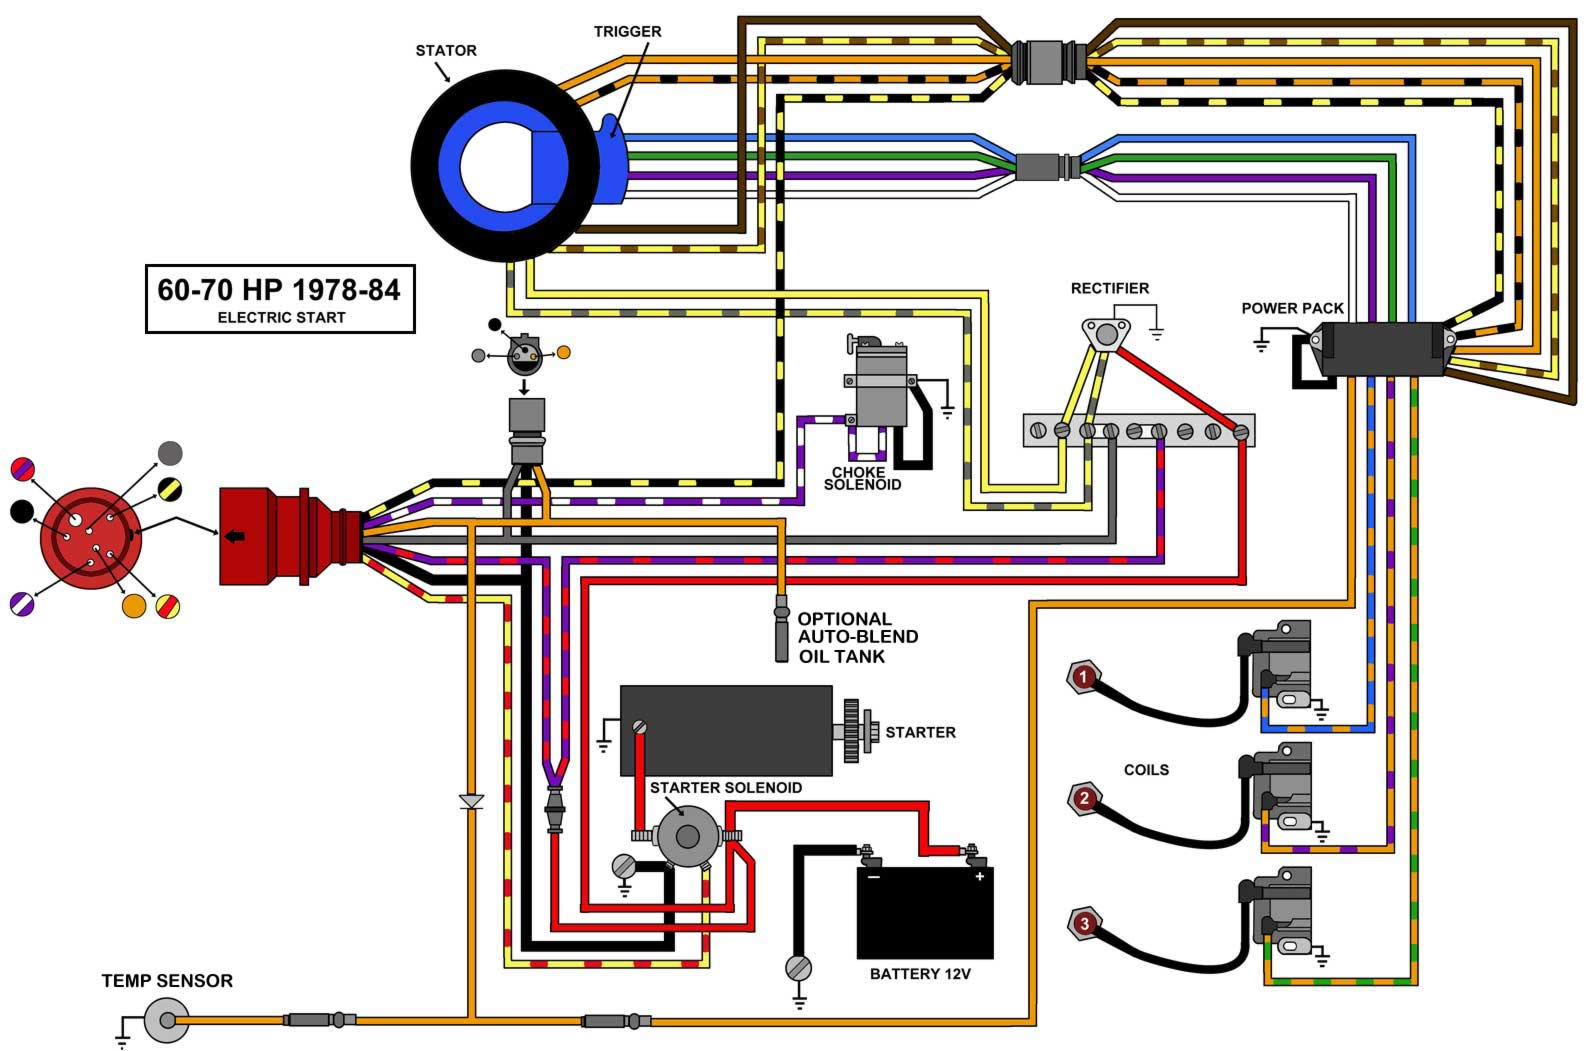 Evinrude Outboard Wiring Diagram Best Secret Pump Control Circuit On E30 Alarm Johnson Todays Rh 20 7 10 1813weddingbarn Com Ignition